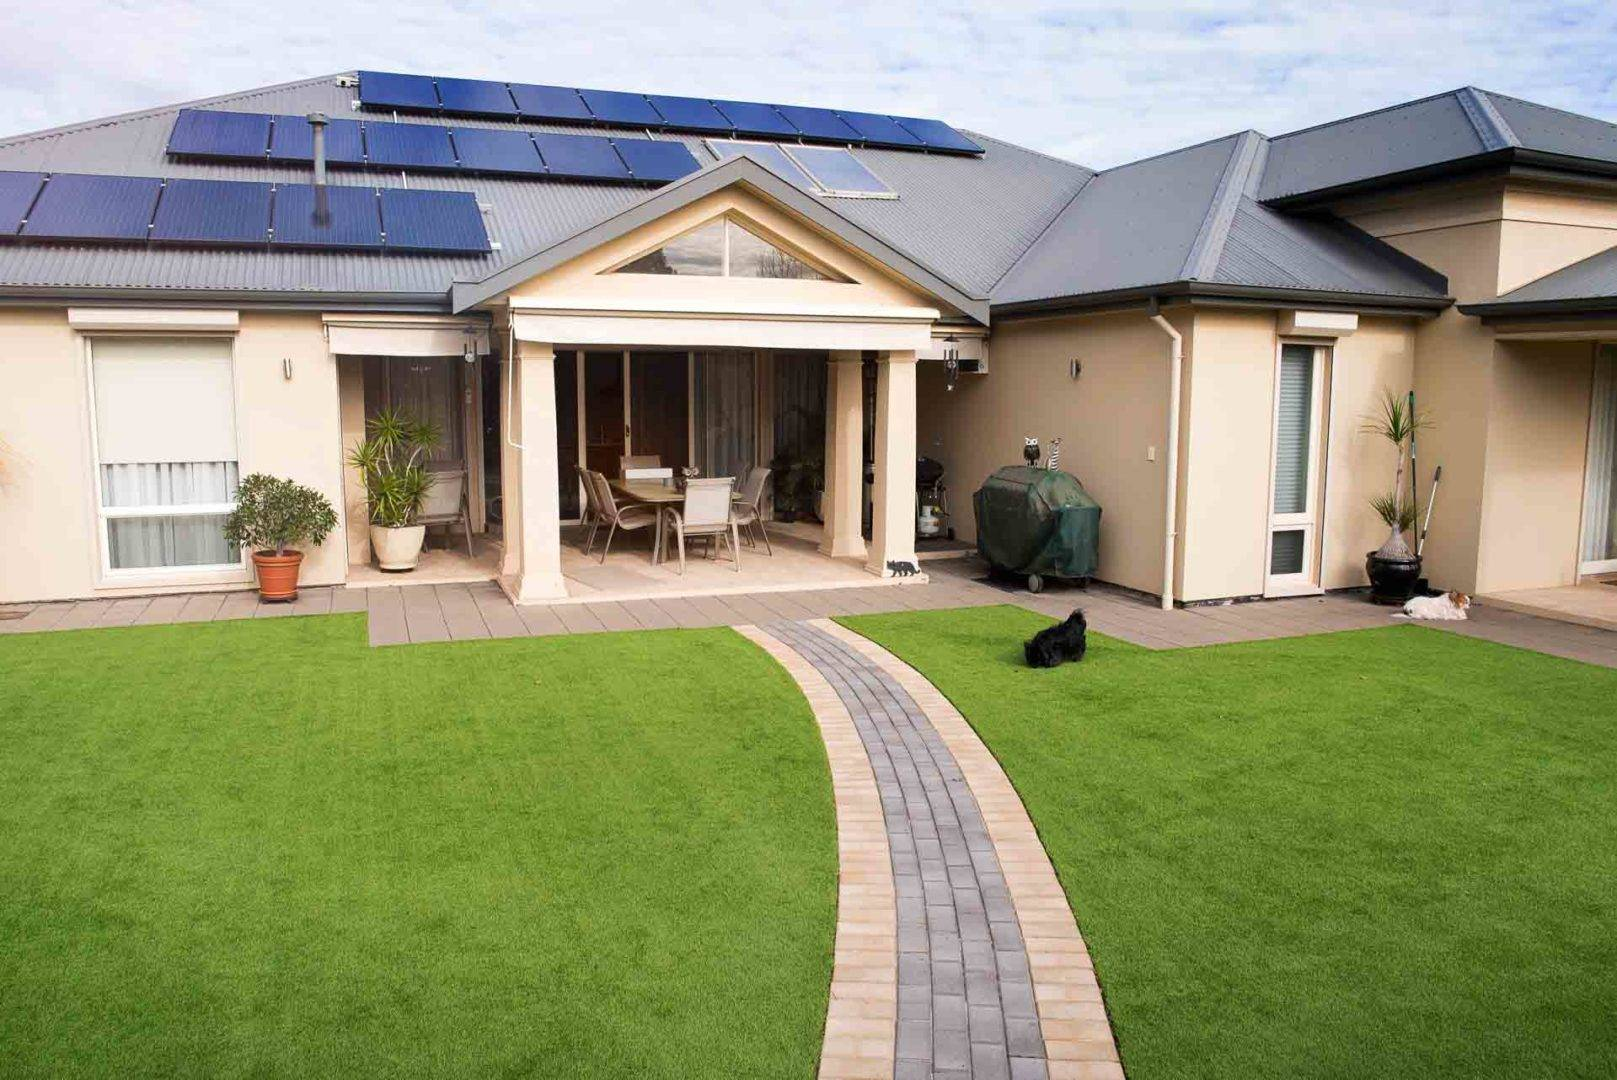 5 Tips on How to Maintain a Clean and Tidy Artificial Grass Lawn - Avoid using corrosive chemicals near your lawn, Australian Outdoor Living.